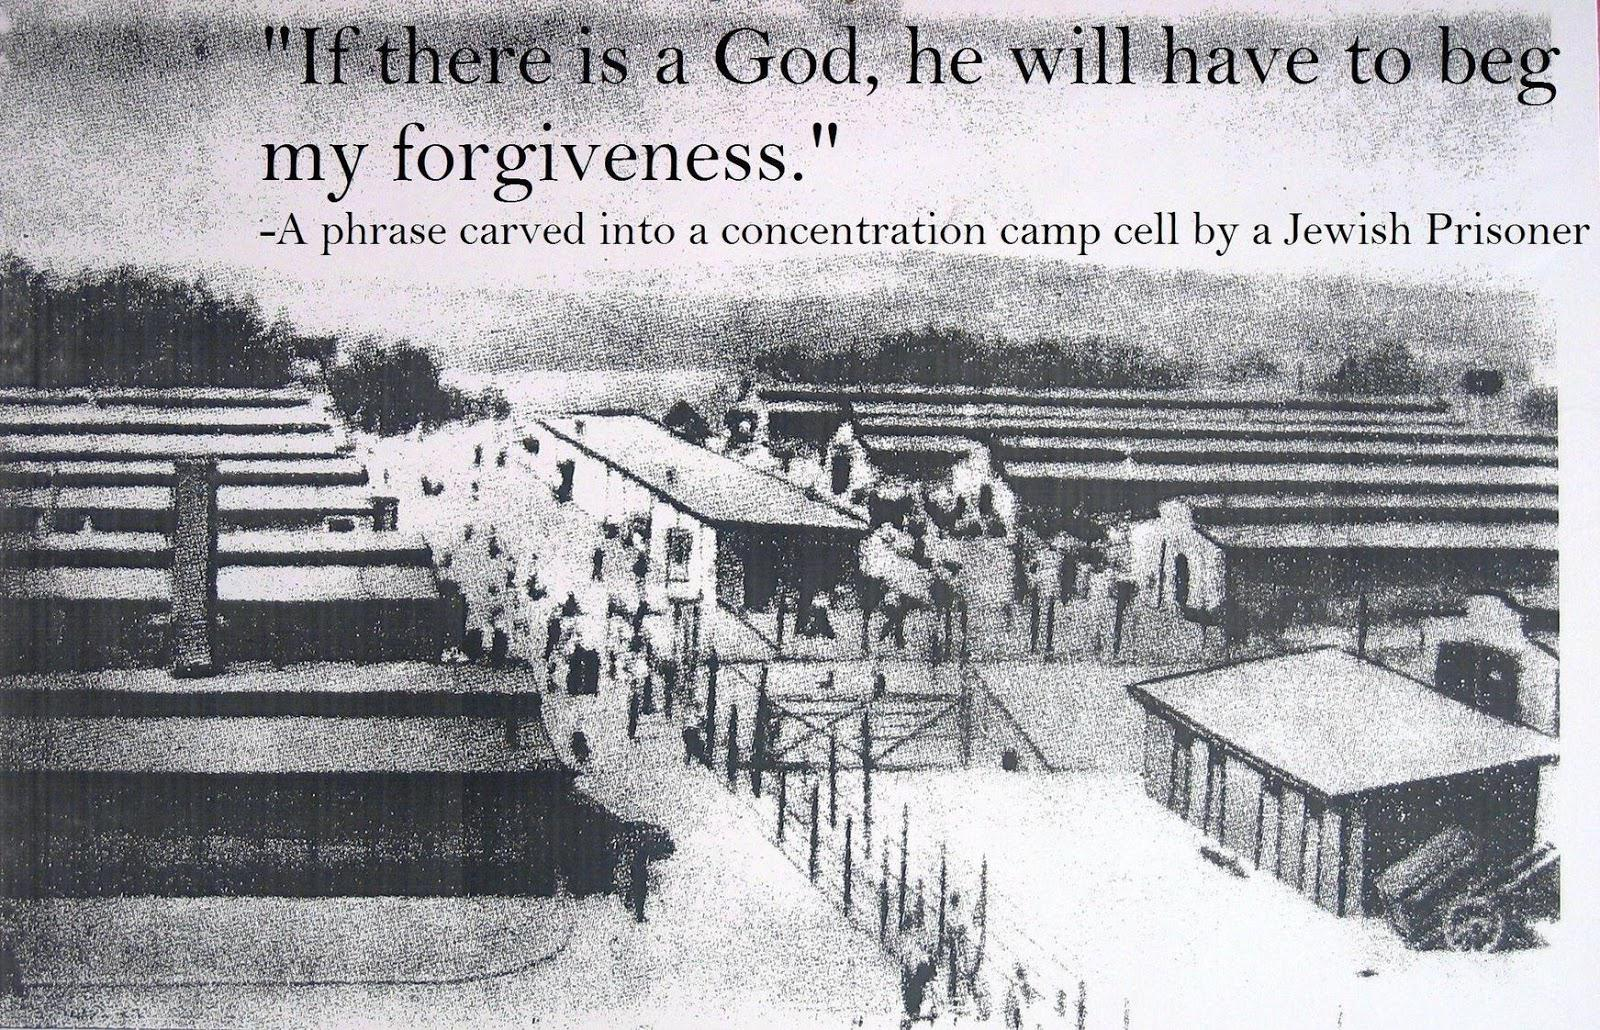 """If there is a God, he'll have to beg for my forgiveness"" – Carved on the walls of a concentration camp [1600 x 1030]"